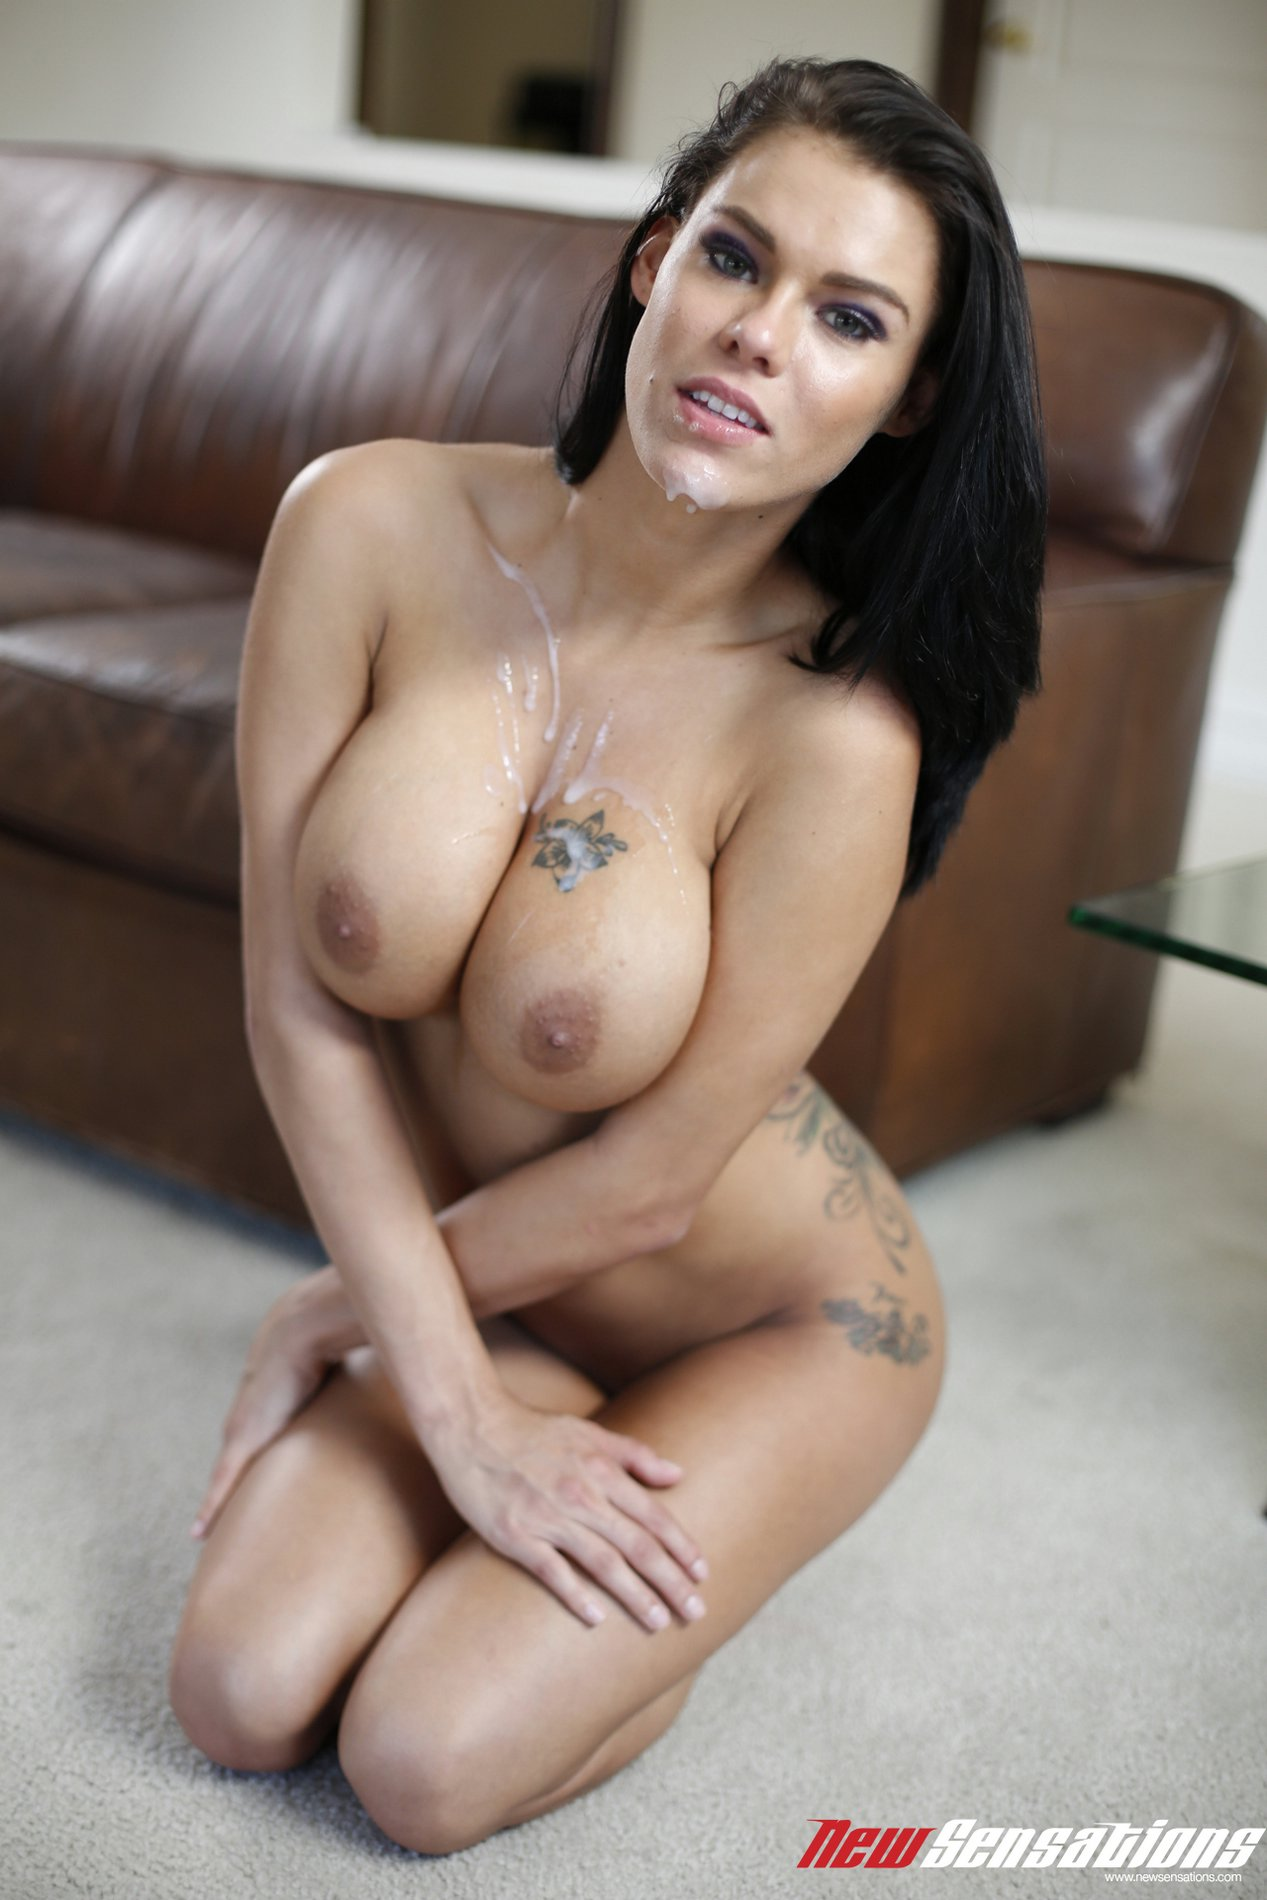 Nurumassage peta jensen takes care of debt - 1 part 5